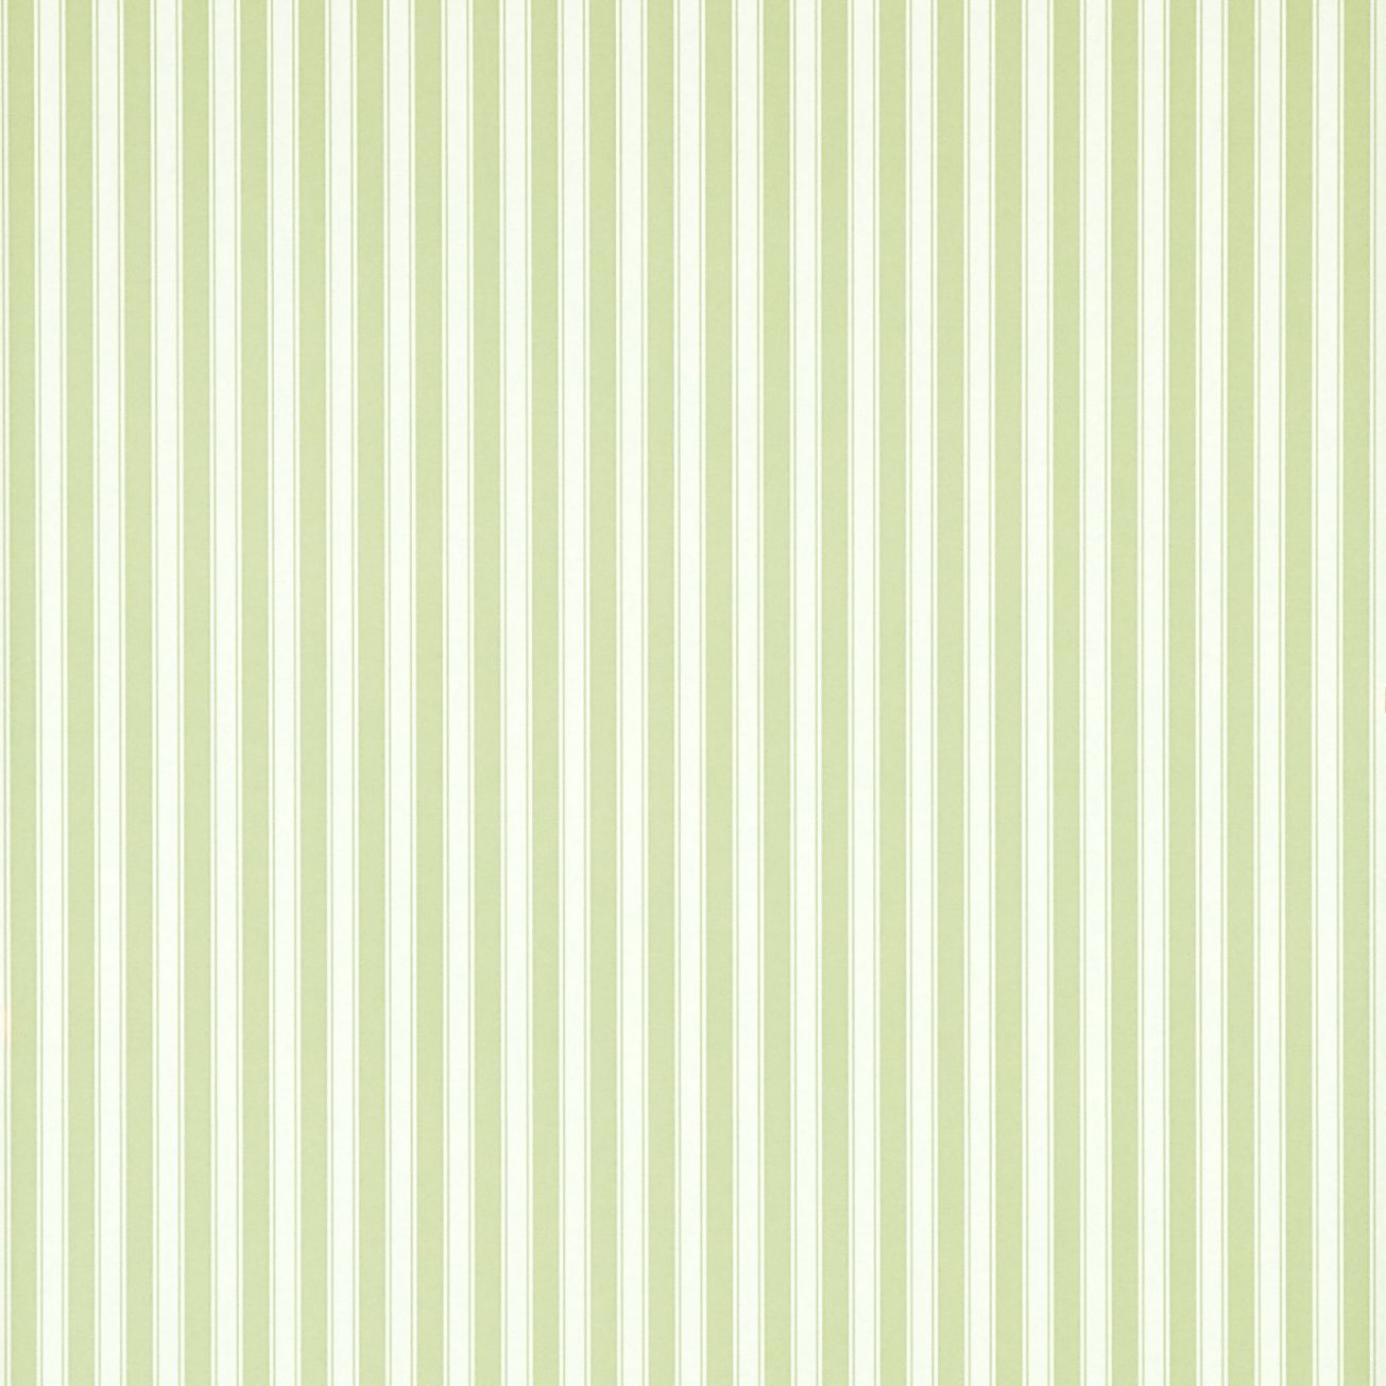 Wallpaper Floral Striped Wallpaper Butterfly Wallpaper - Grey Marble Peel And Stick - HD Wallpaper